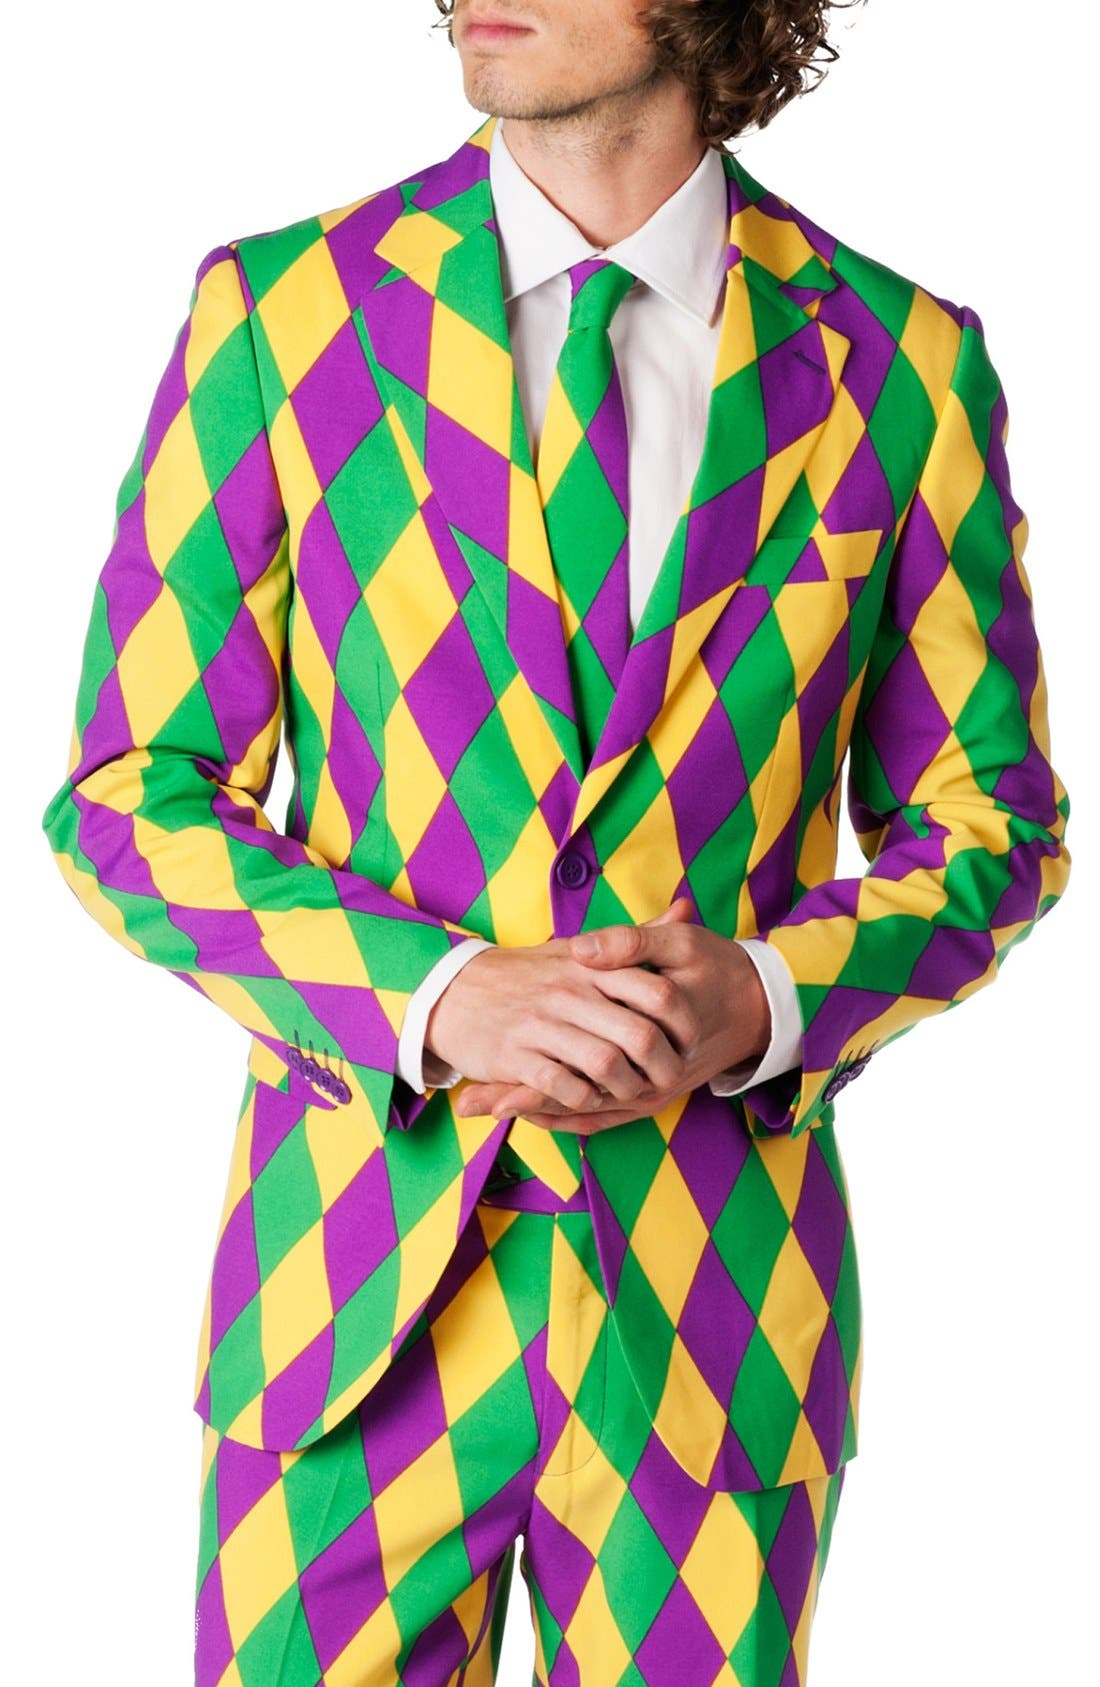 'Harleking' Trim Fit Suit with Tie,                             Alternate thumbnail 4, color,                             Green/ Purple/ Yellow